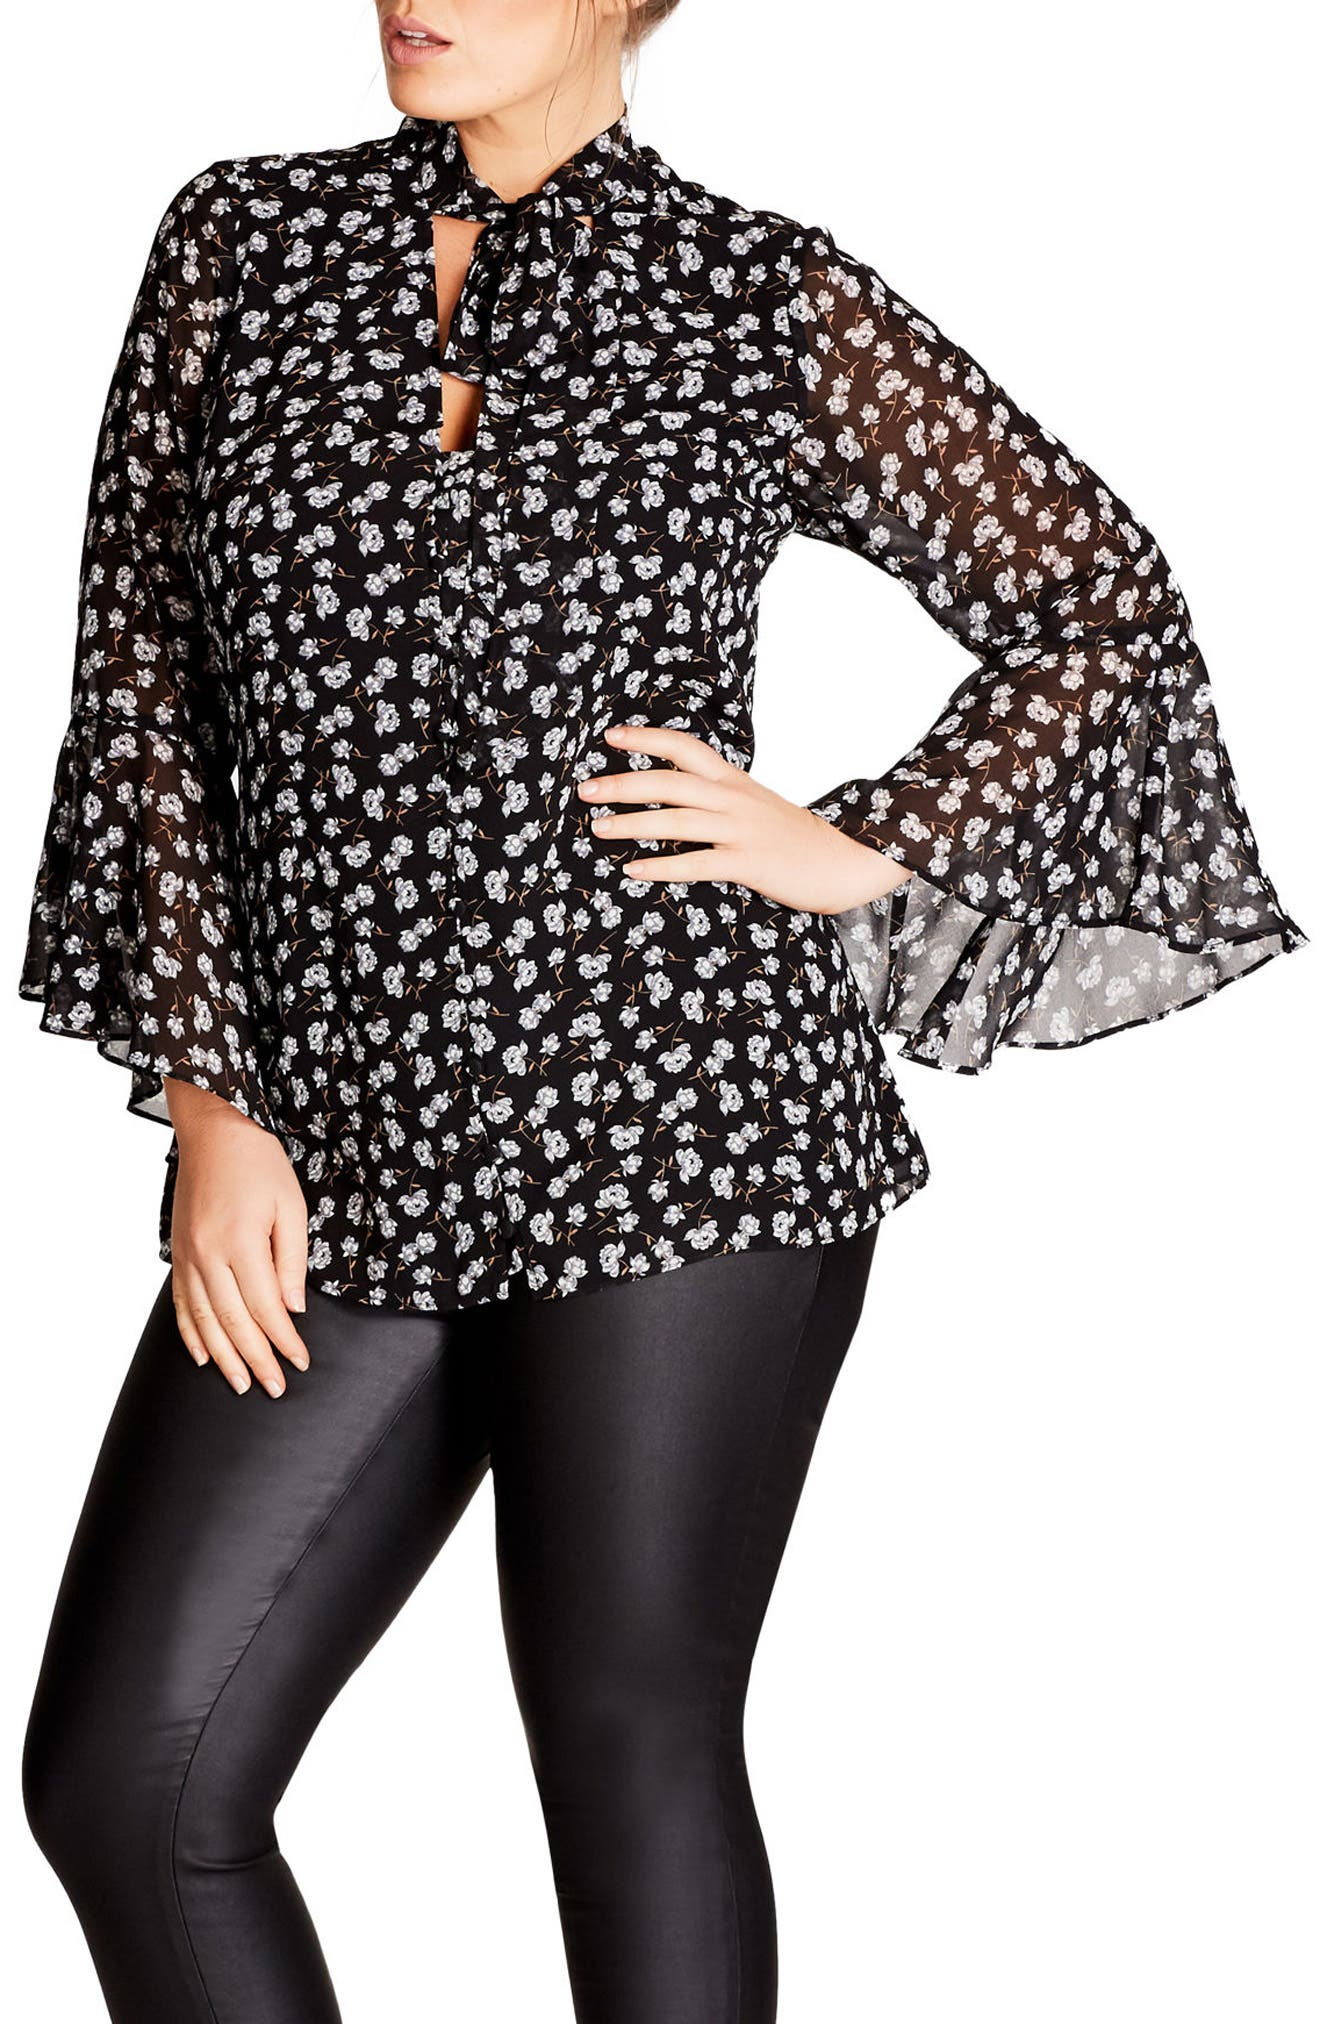 Alternate Image 1 Selected - City Chic Blossom Print Blouse (Plus Size)